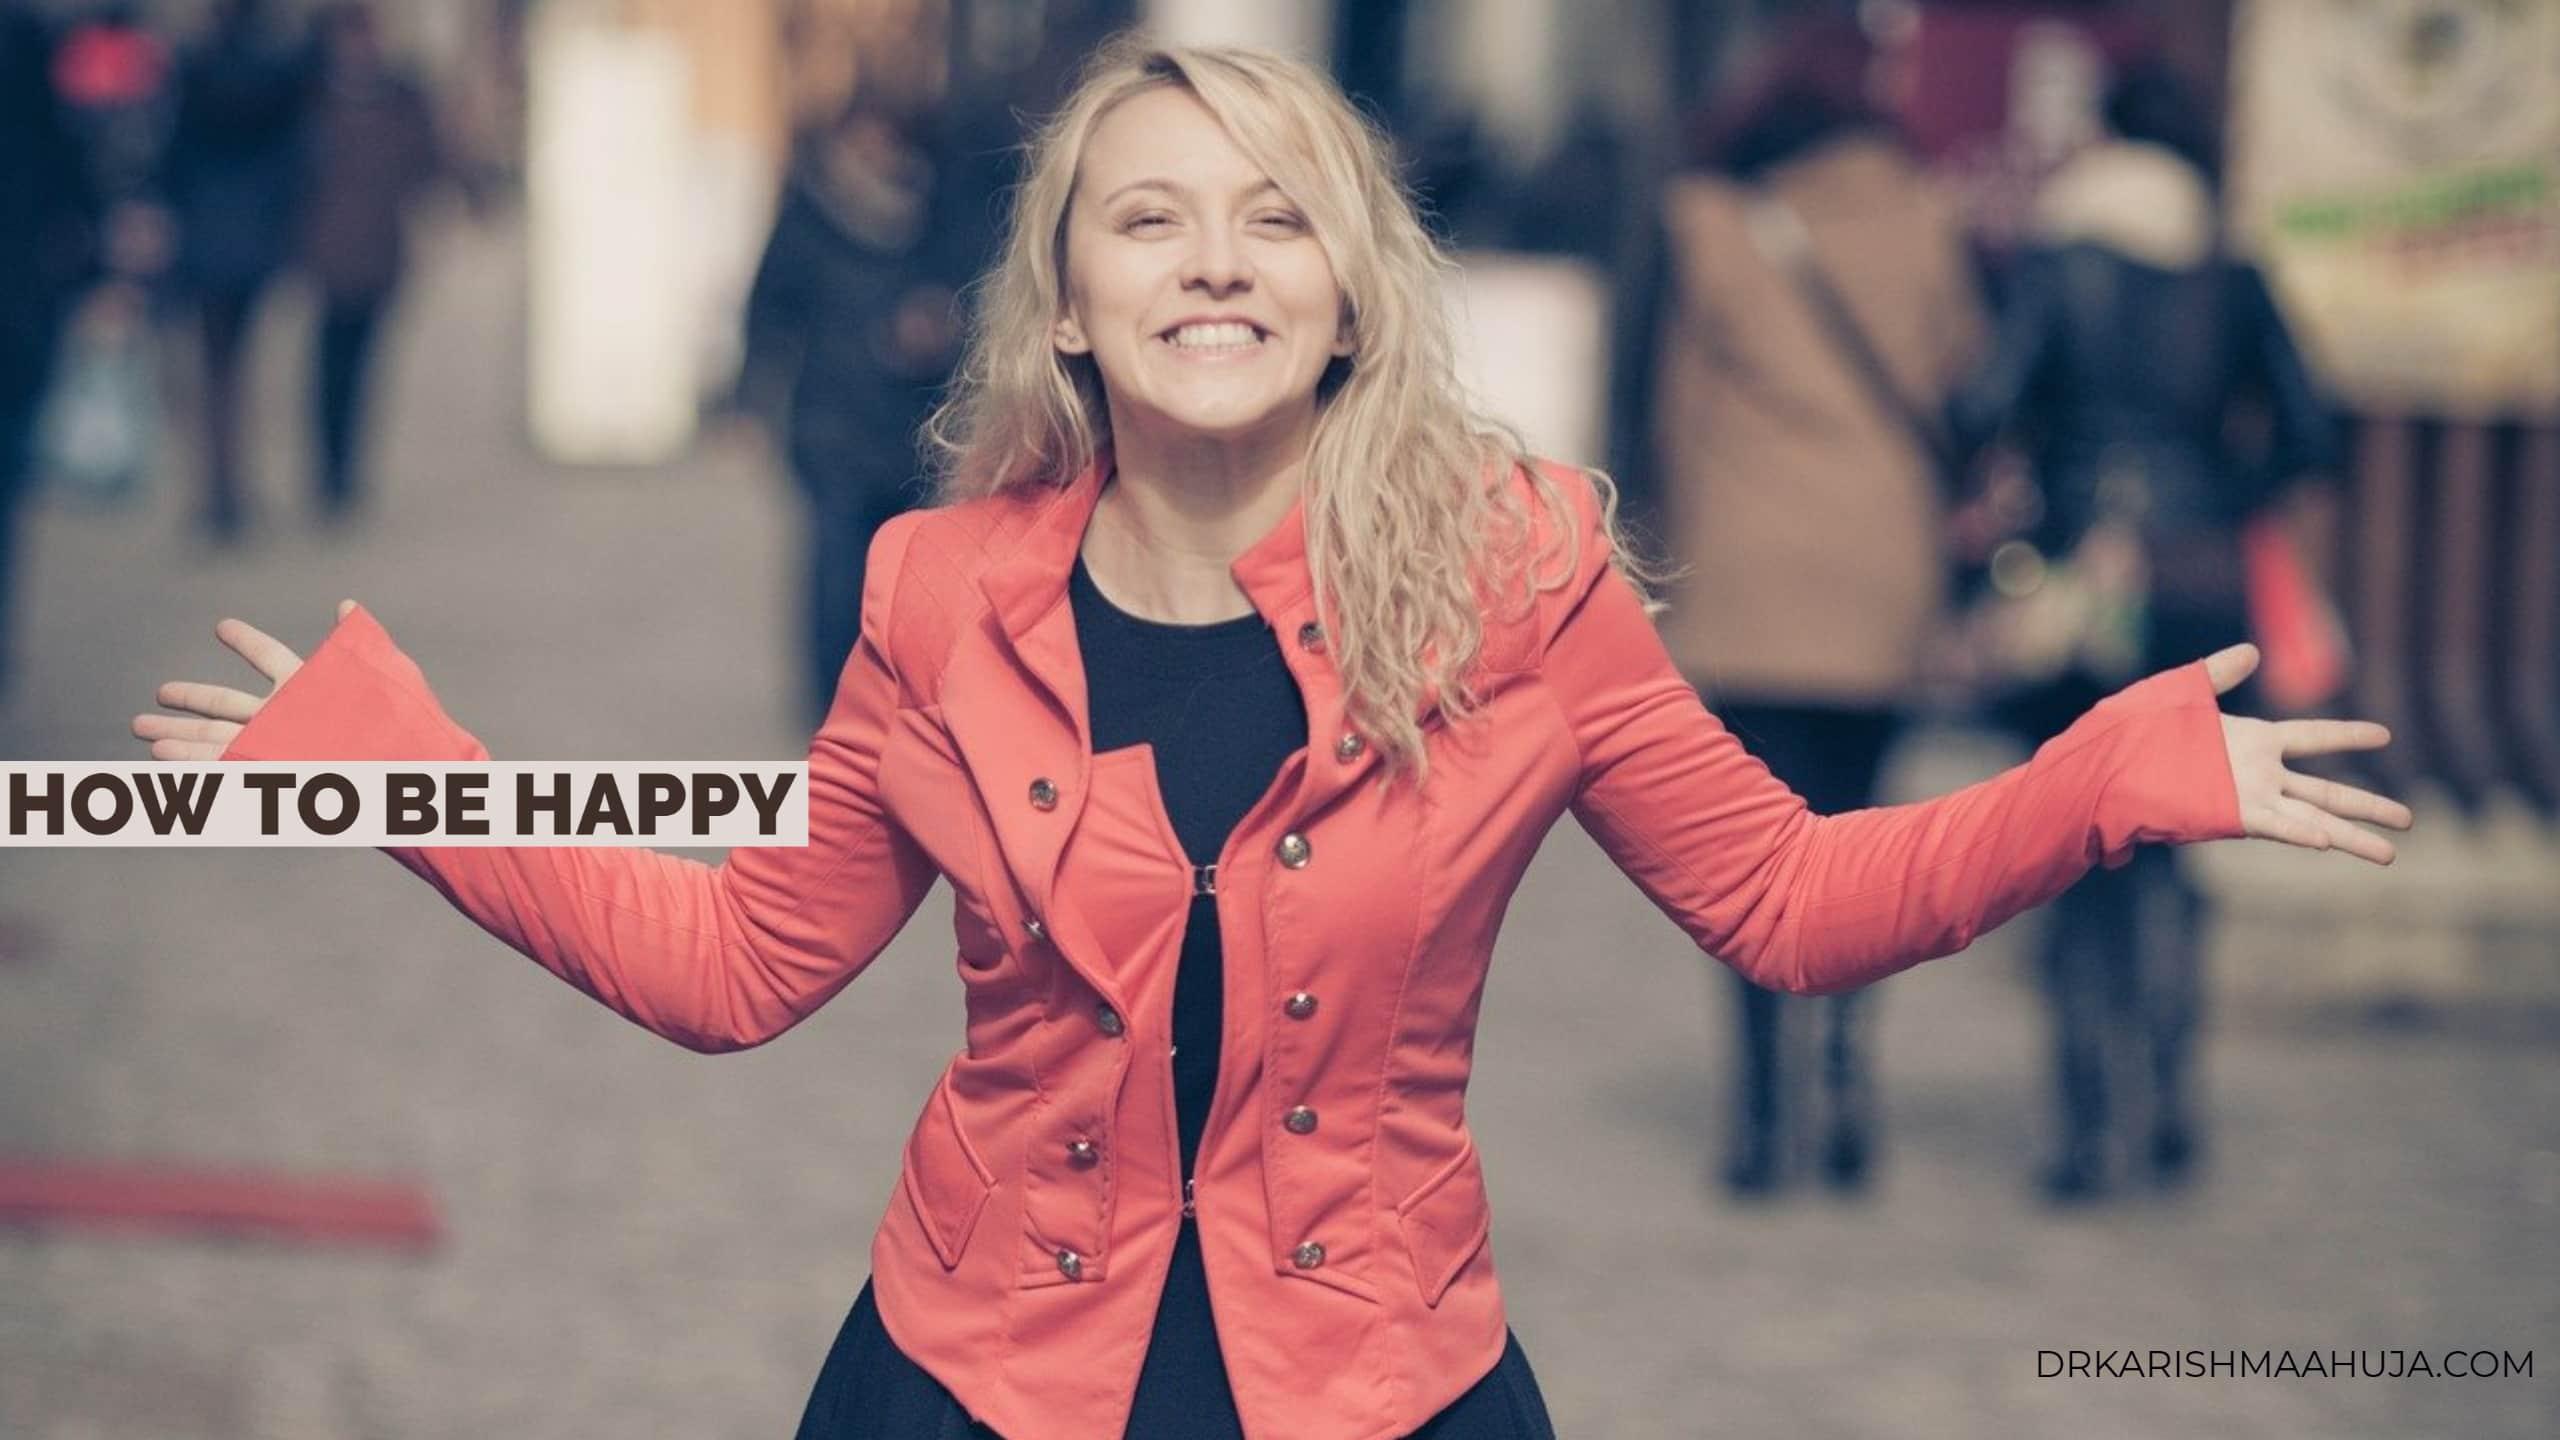 How to be Happy? Blog Post by Dr Karishma Ahuja